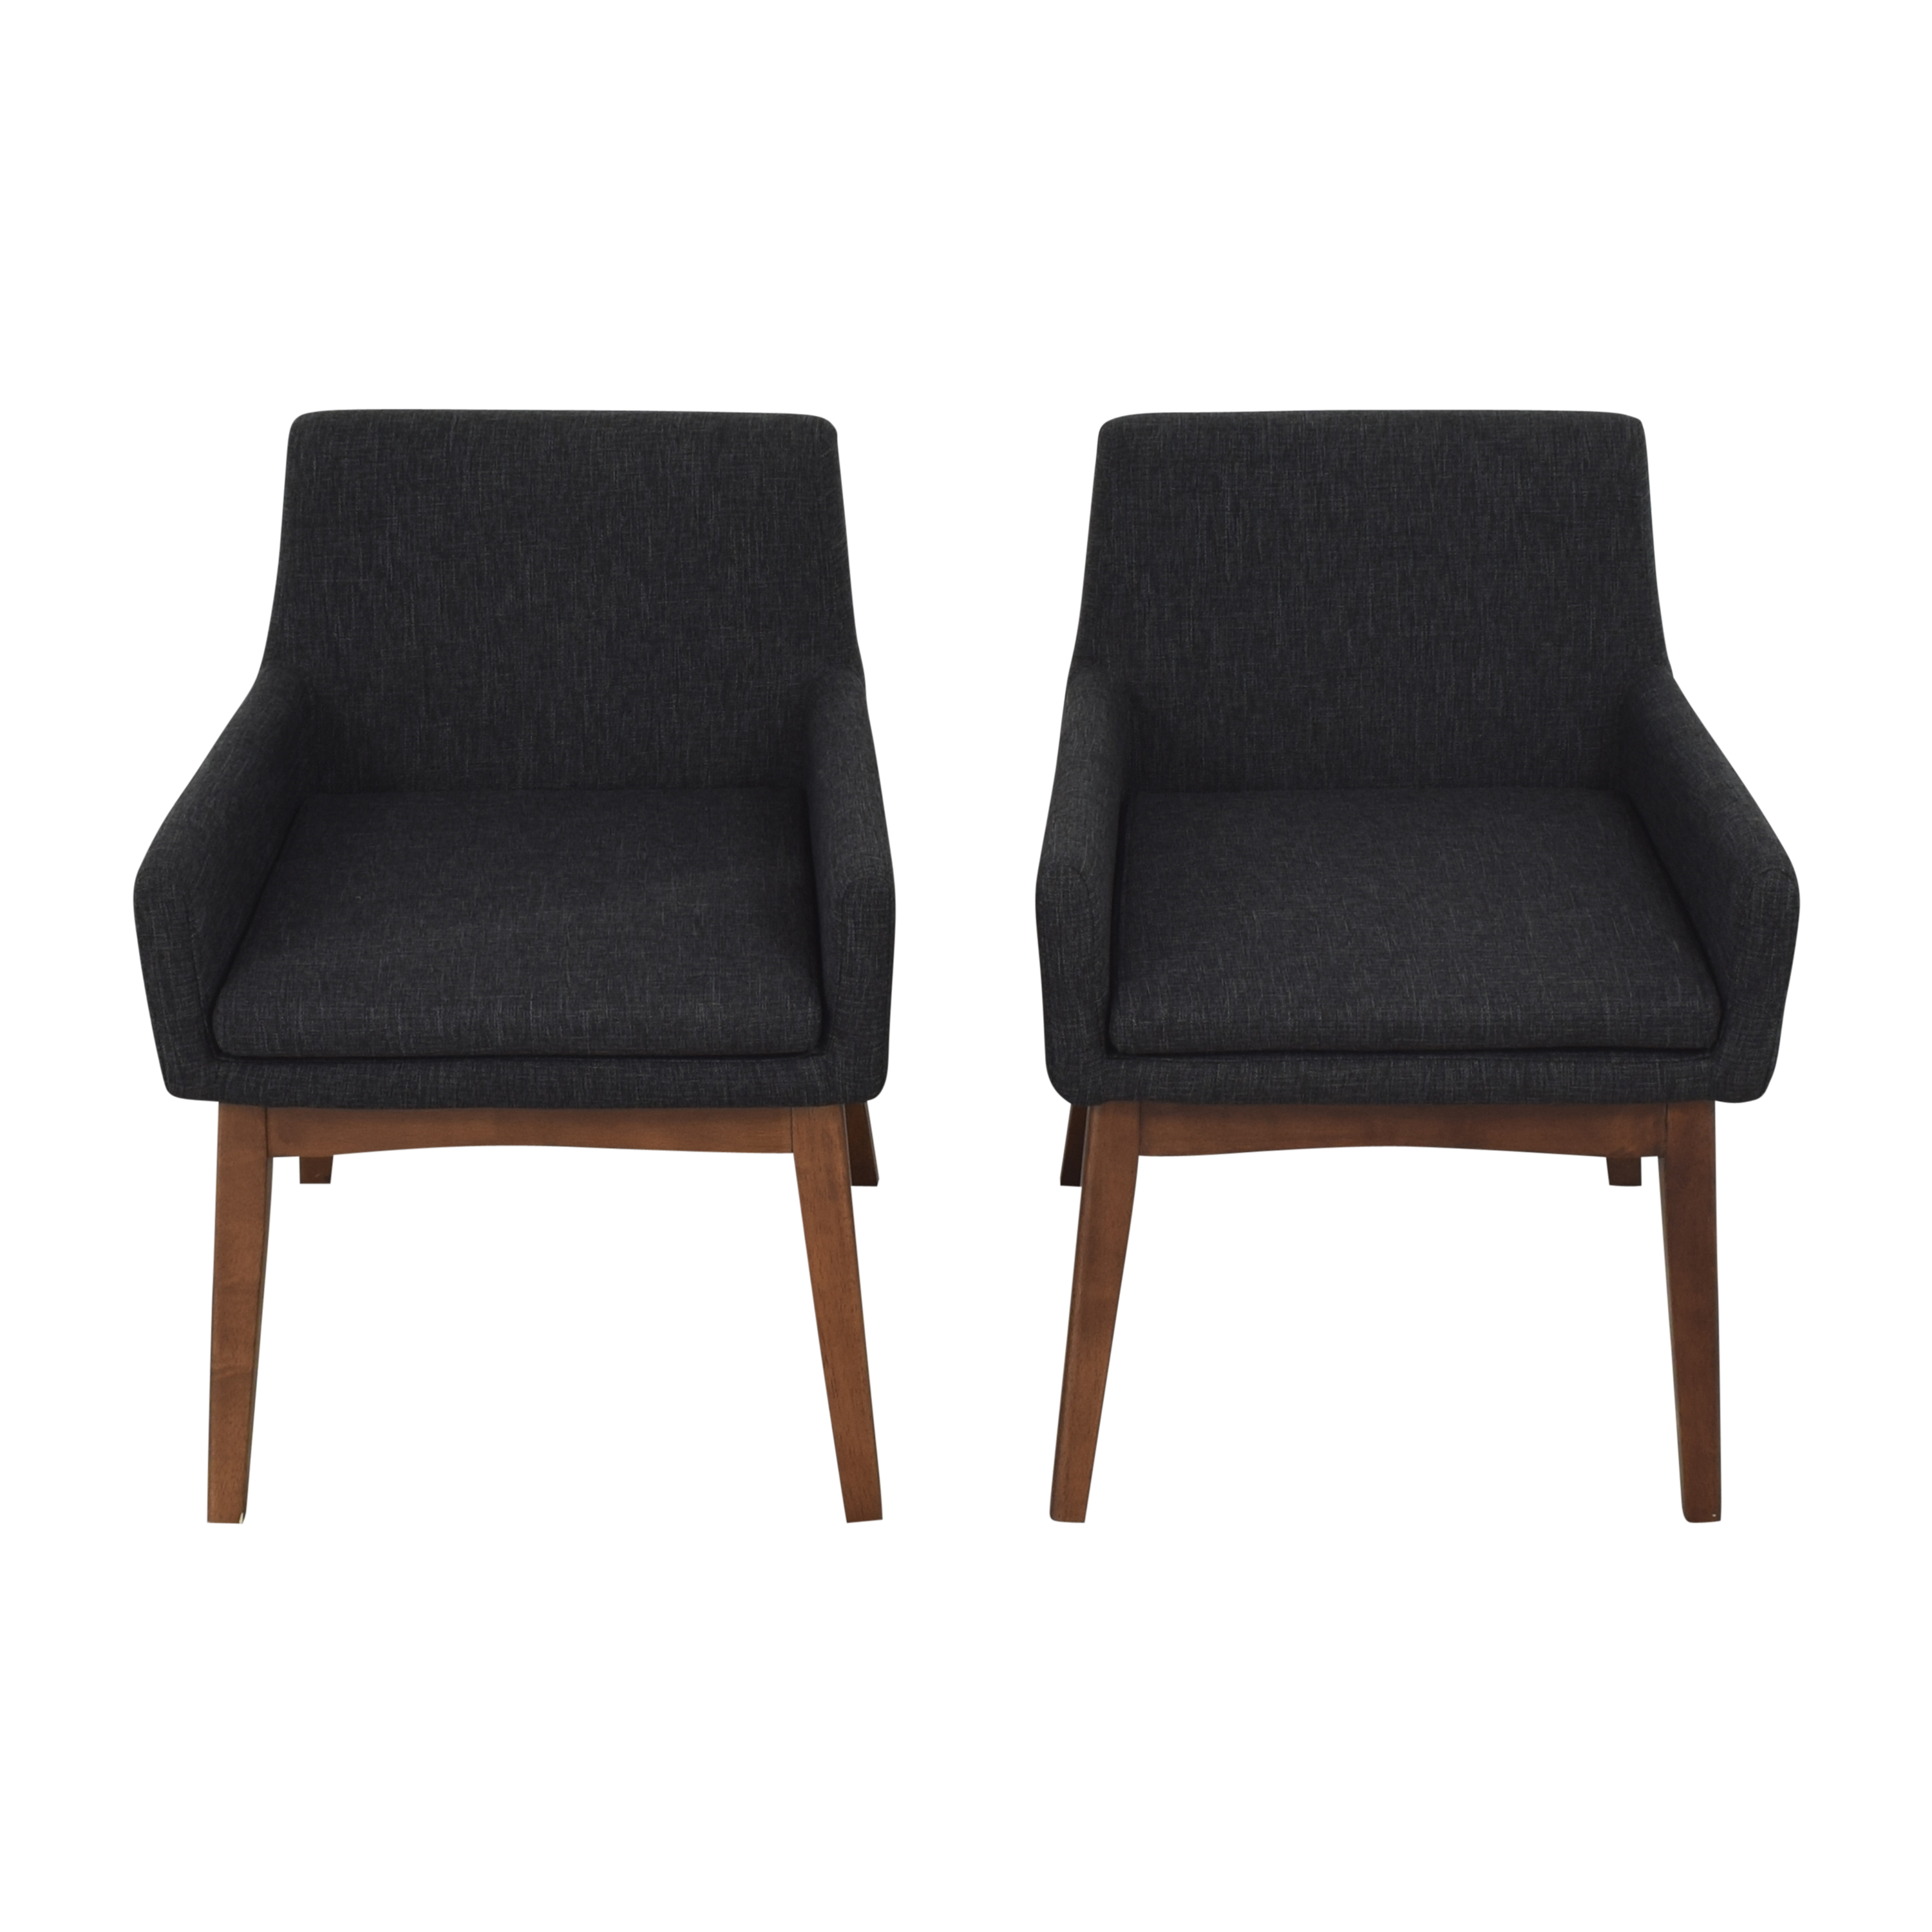 buy Article Chanel Dining Arm Chairs Article